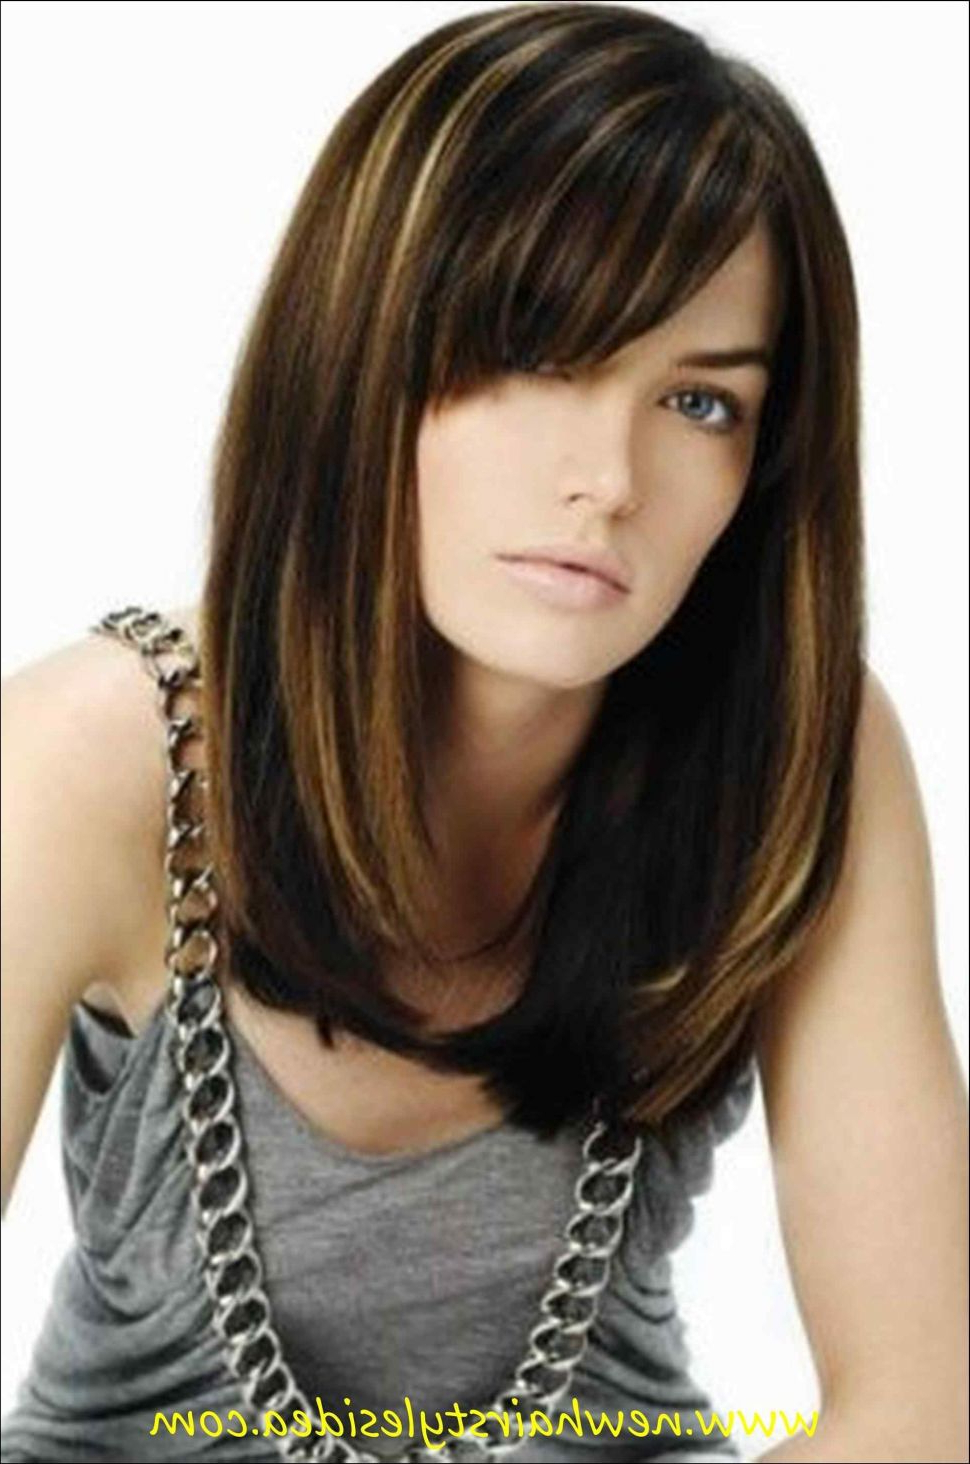 Hairstyles : Classy Side Bob Hairstyles For Long Haircuts Inside Classy Bob Haircuts With Bangs (View 18 of 20)